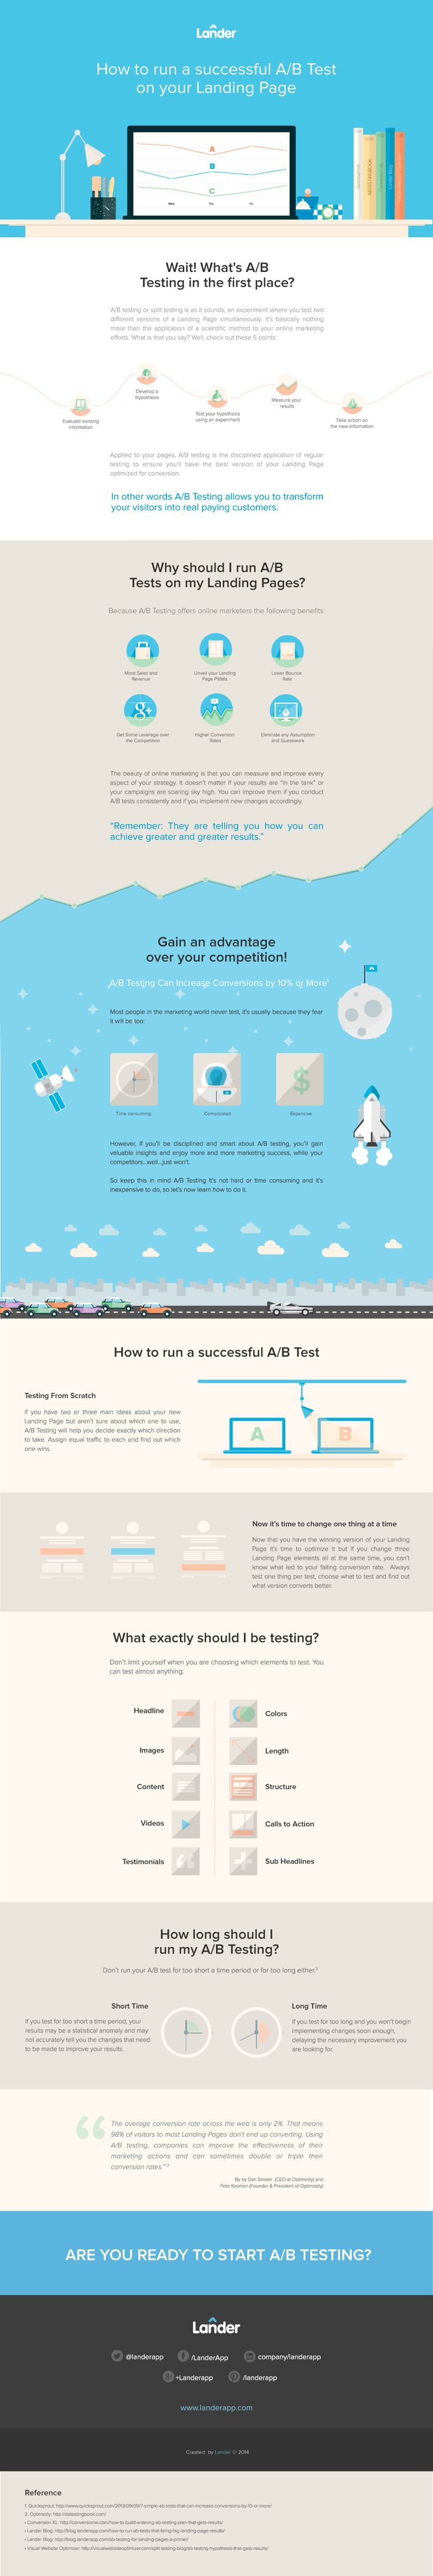 How to run a successful A/B test on your landing page - #infographic #marketing